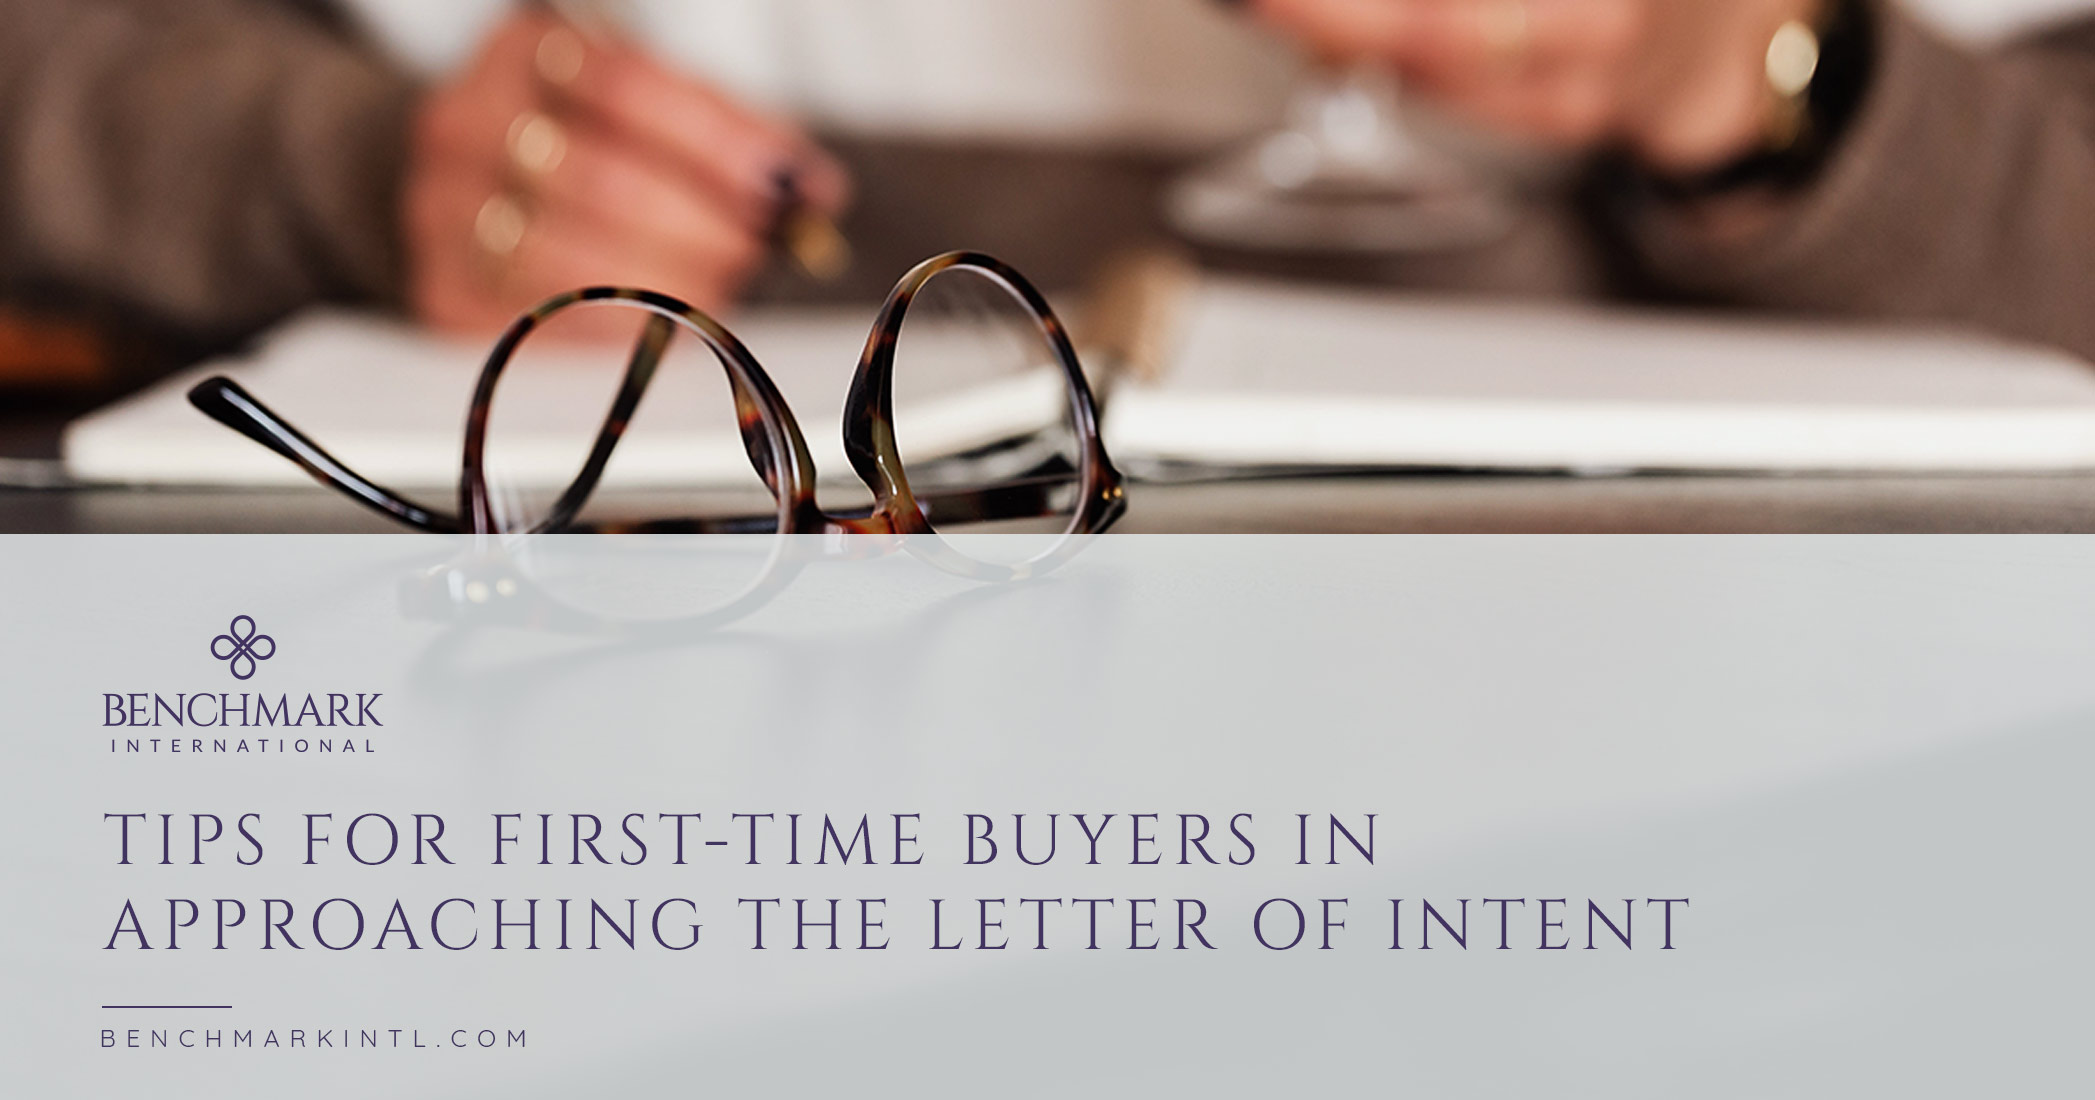 Tips for First-Time Buyers in Approaching the Letter of Intent